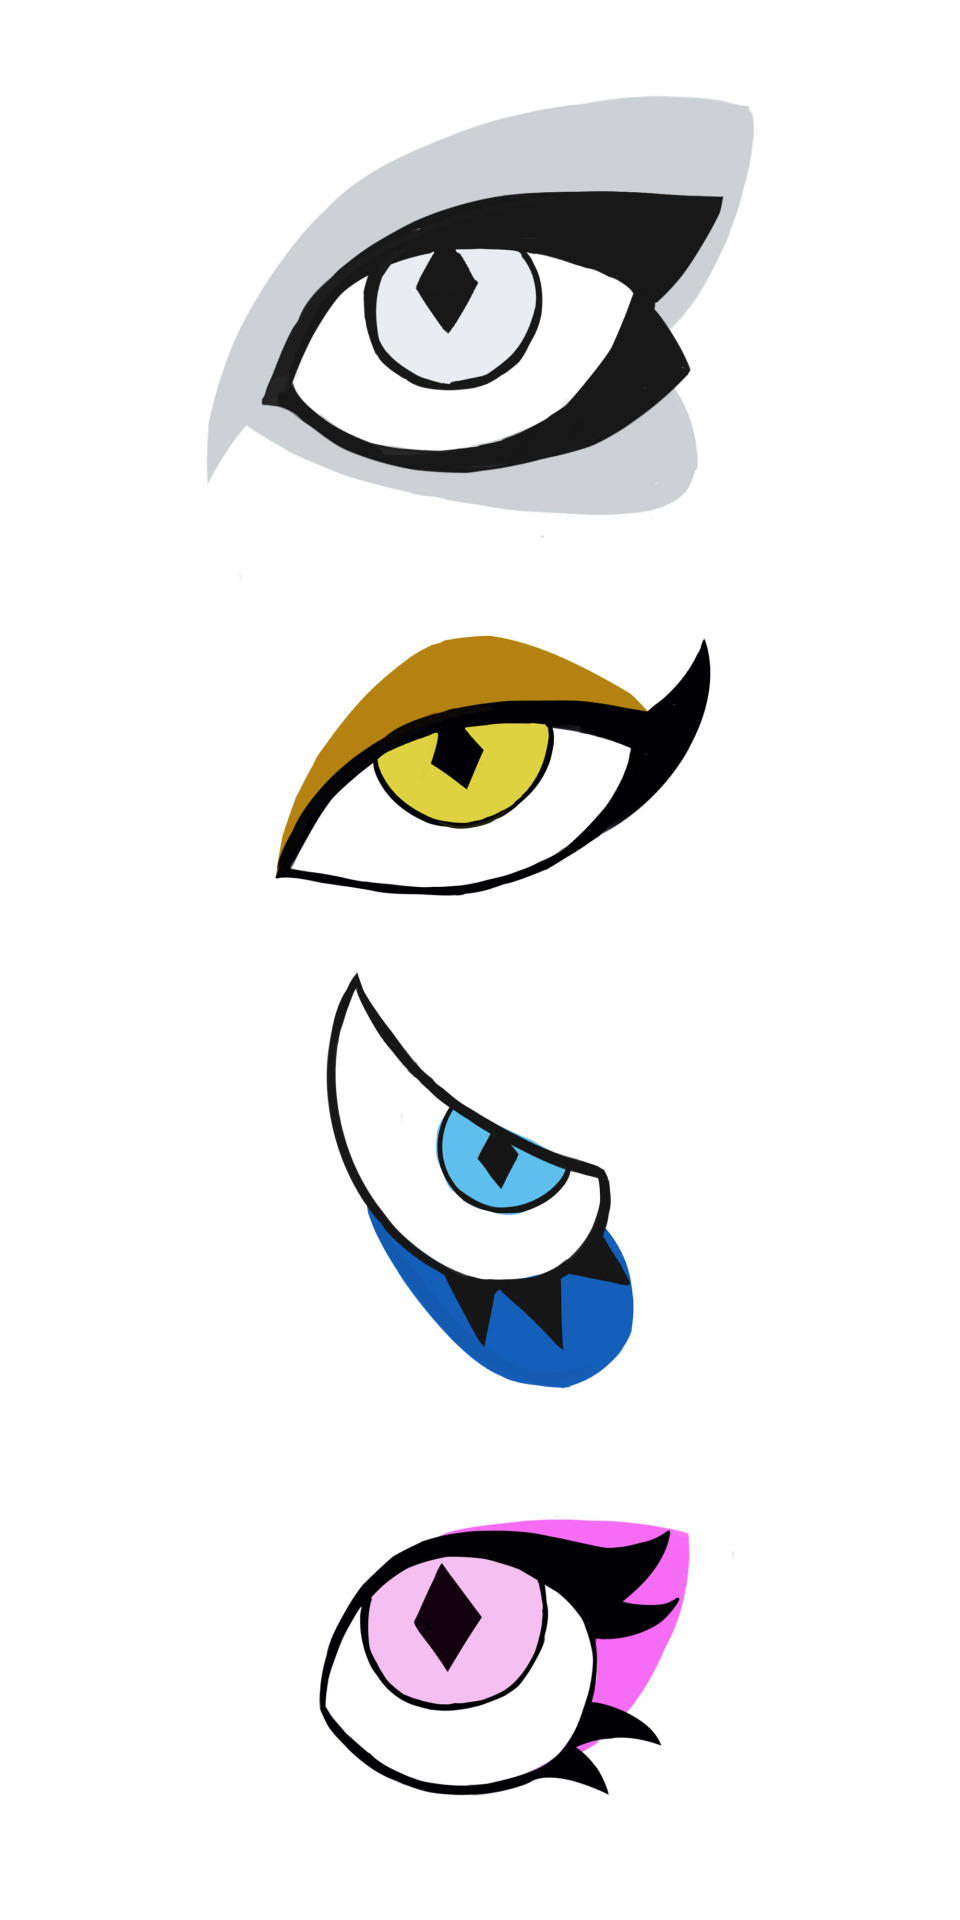 960x1920 White Diamond And Pink Diamond Eye Design Prediction Steven